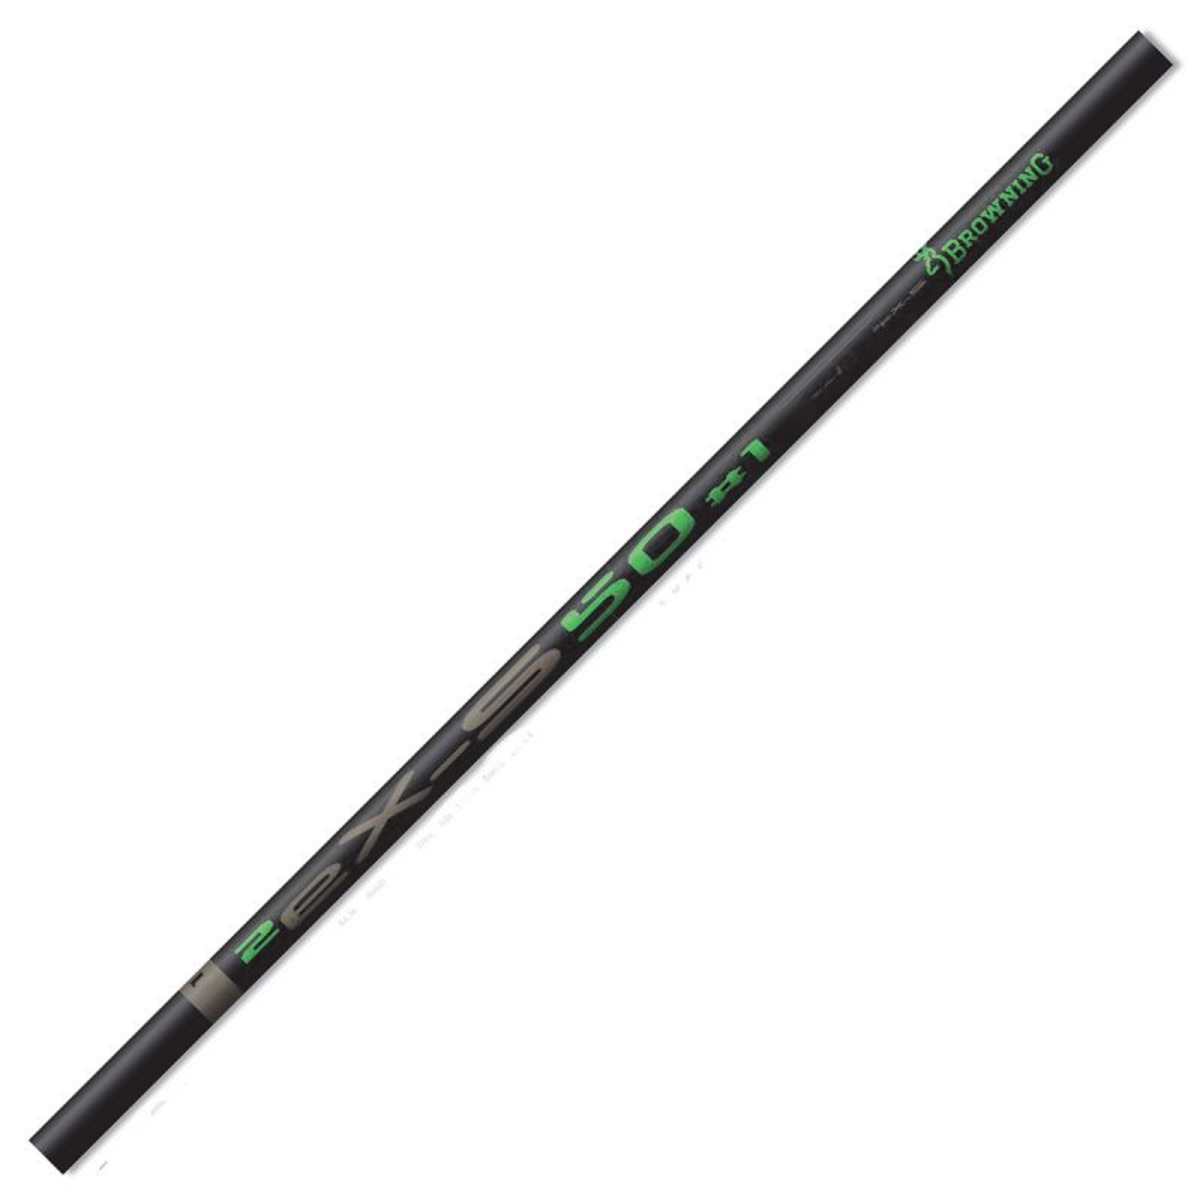 Browning 2 eX - S 50 - Pole - 13 m